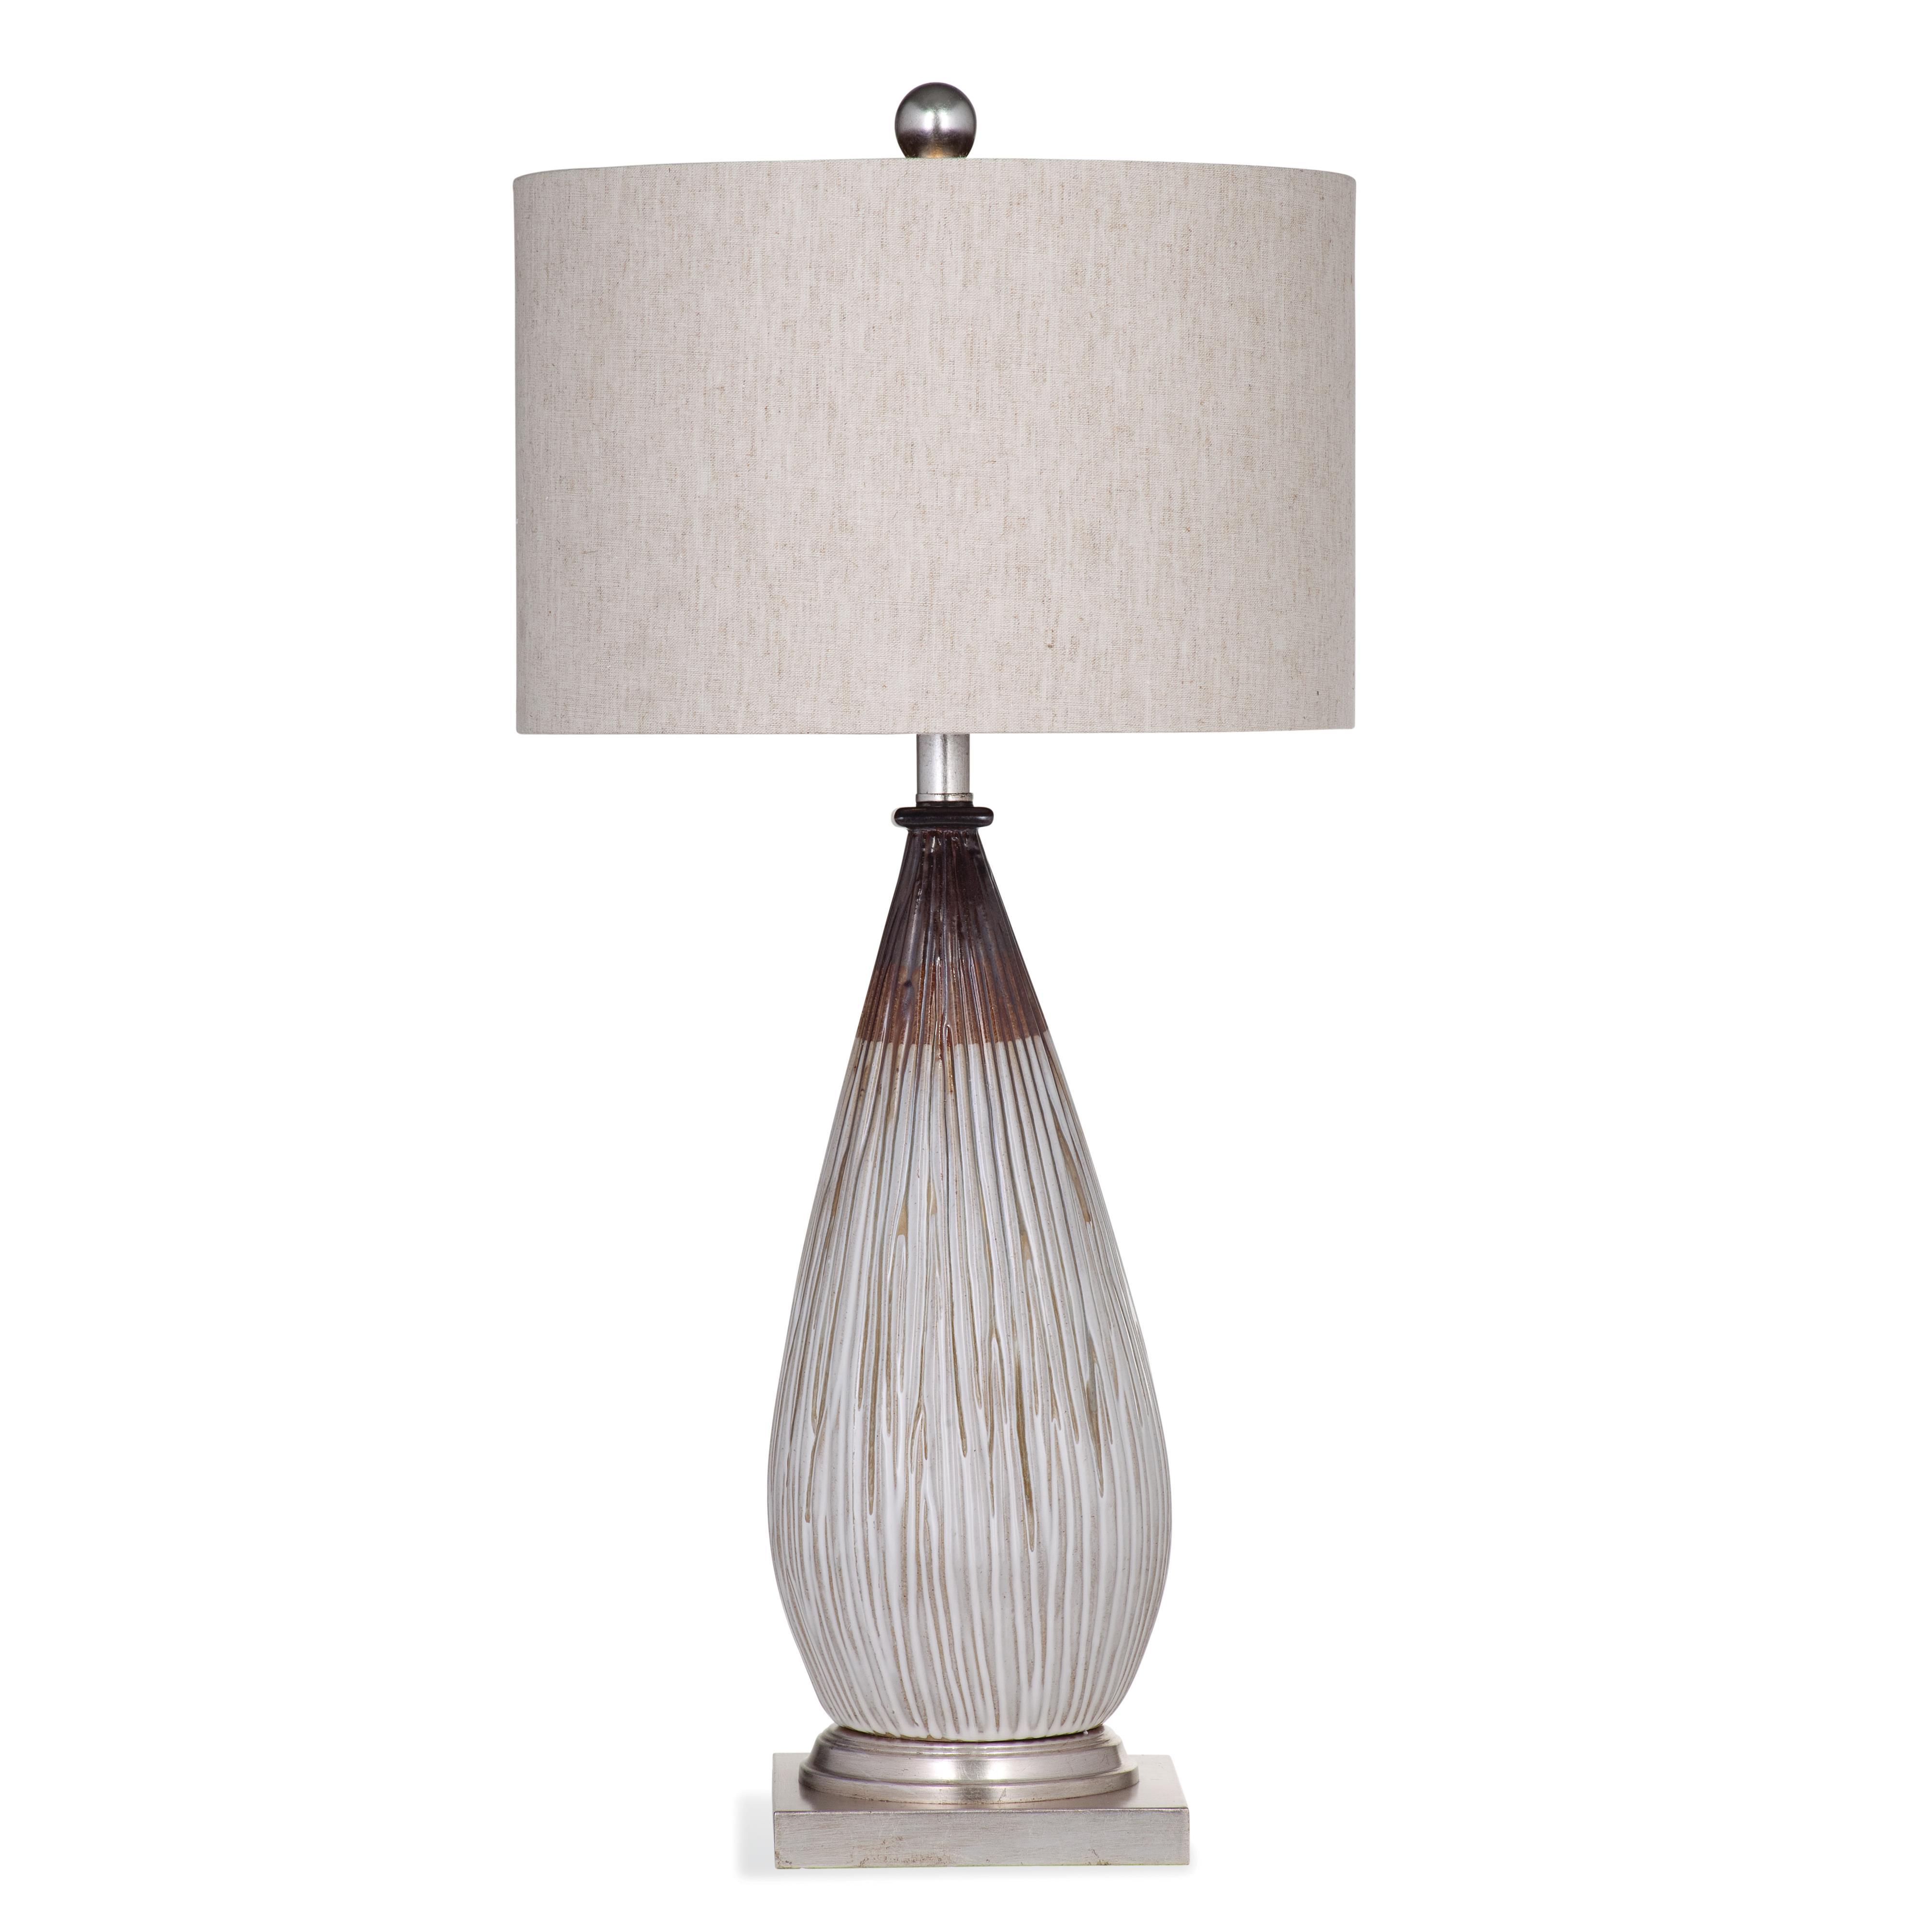 Old World Sherrill Table Lamp by Bassett Mirror at Alison Craig Home Furnishings